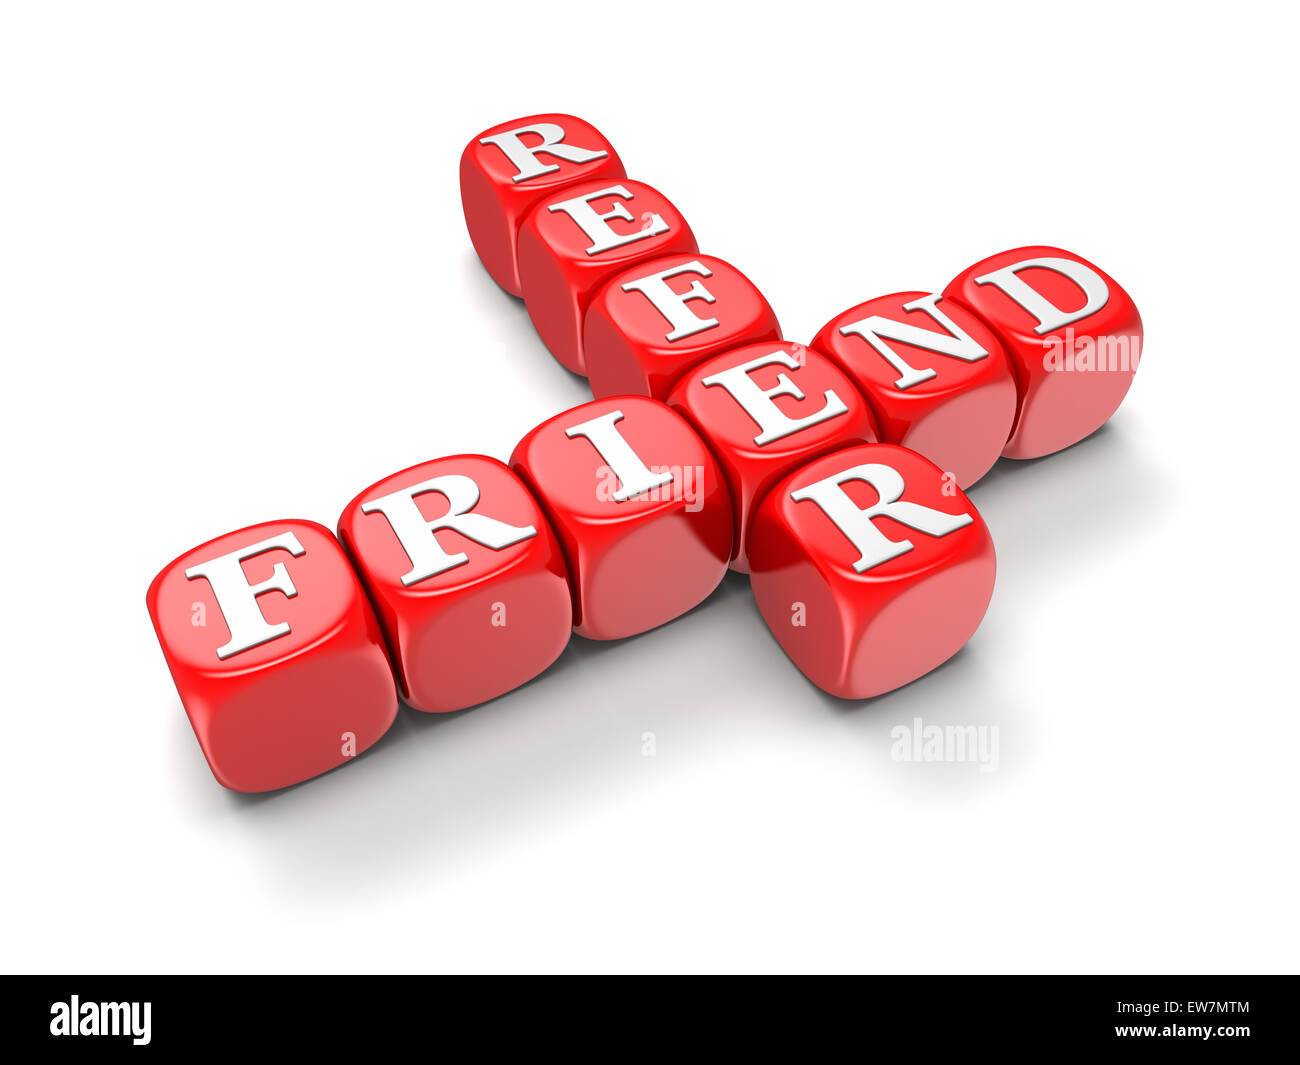 Refer Friend - Block Letters (clipping path included) - Stock Image